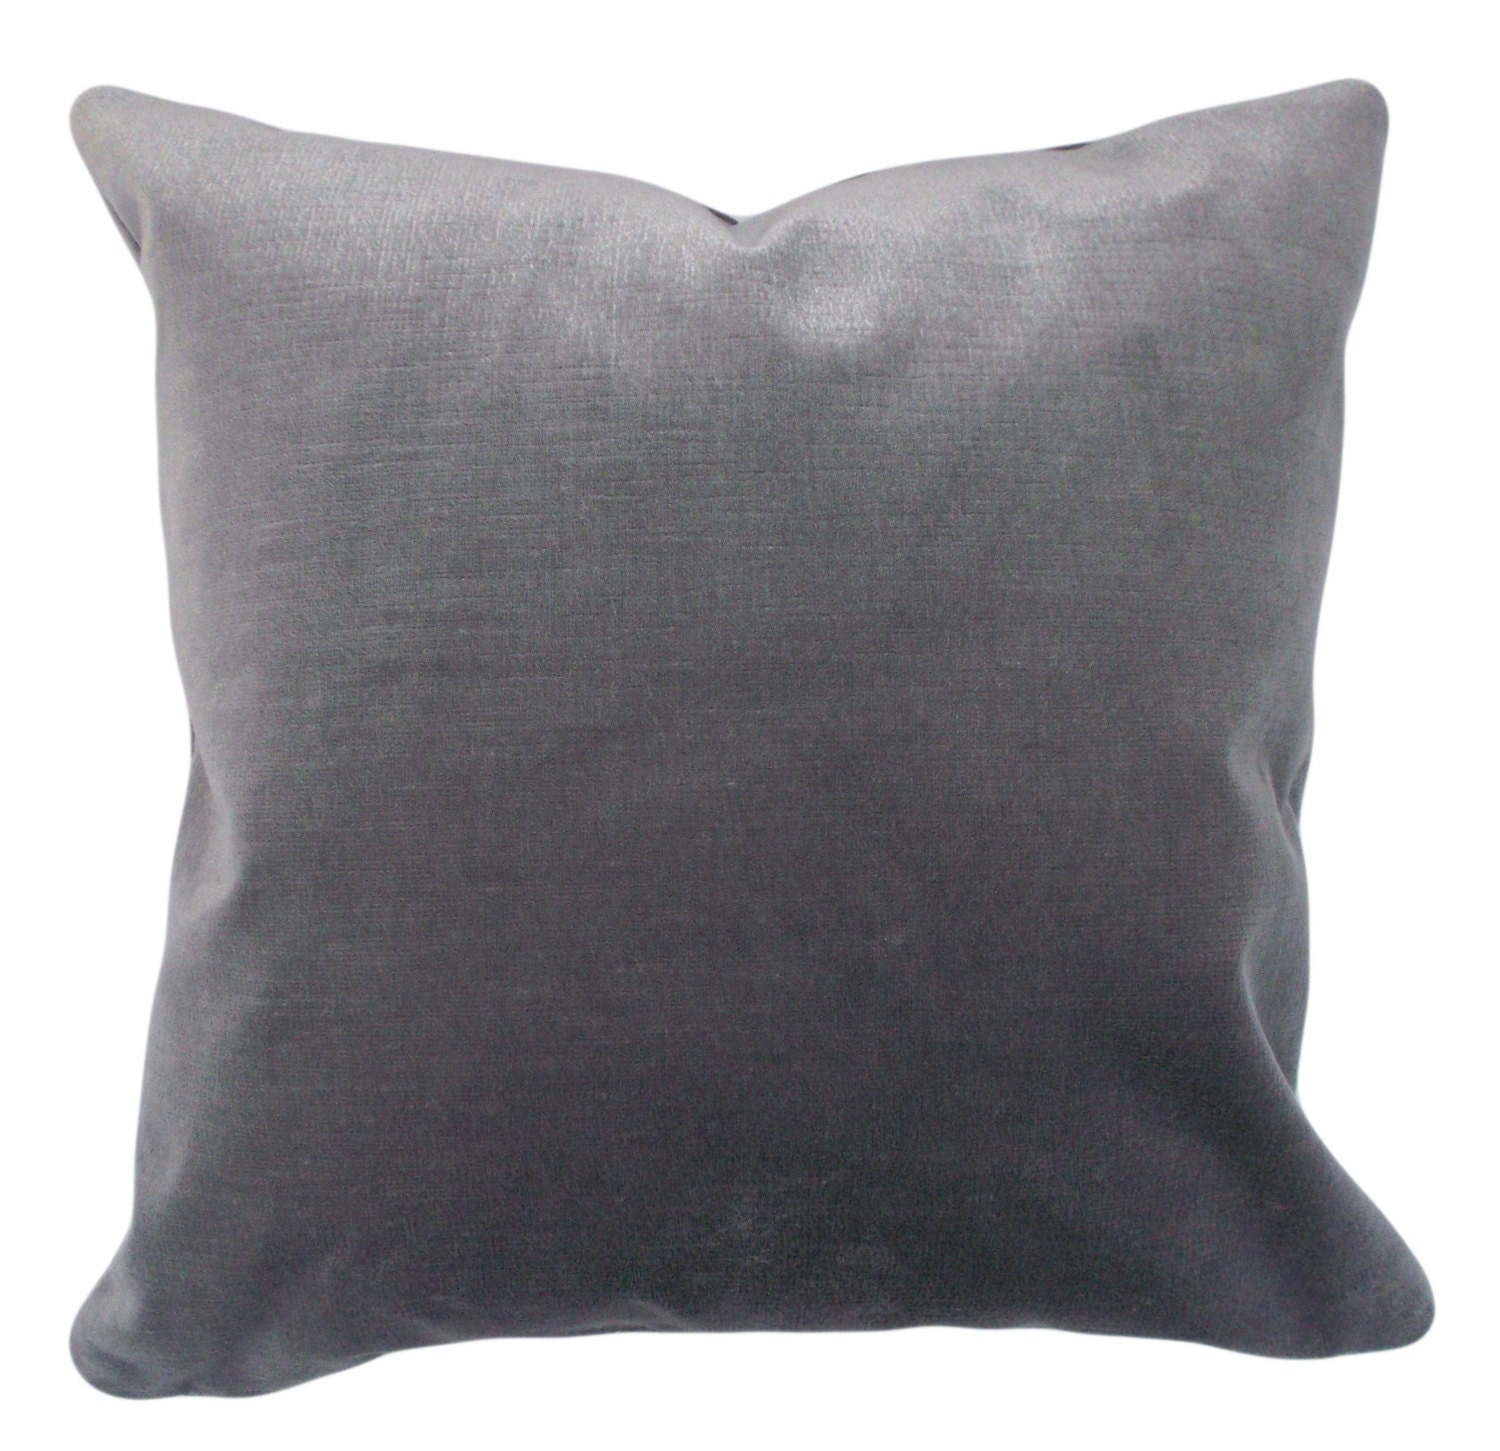 Throw Pillows Velvet : Grey Velvet Decorative Pillow Cover 12x20 14x24 18x18